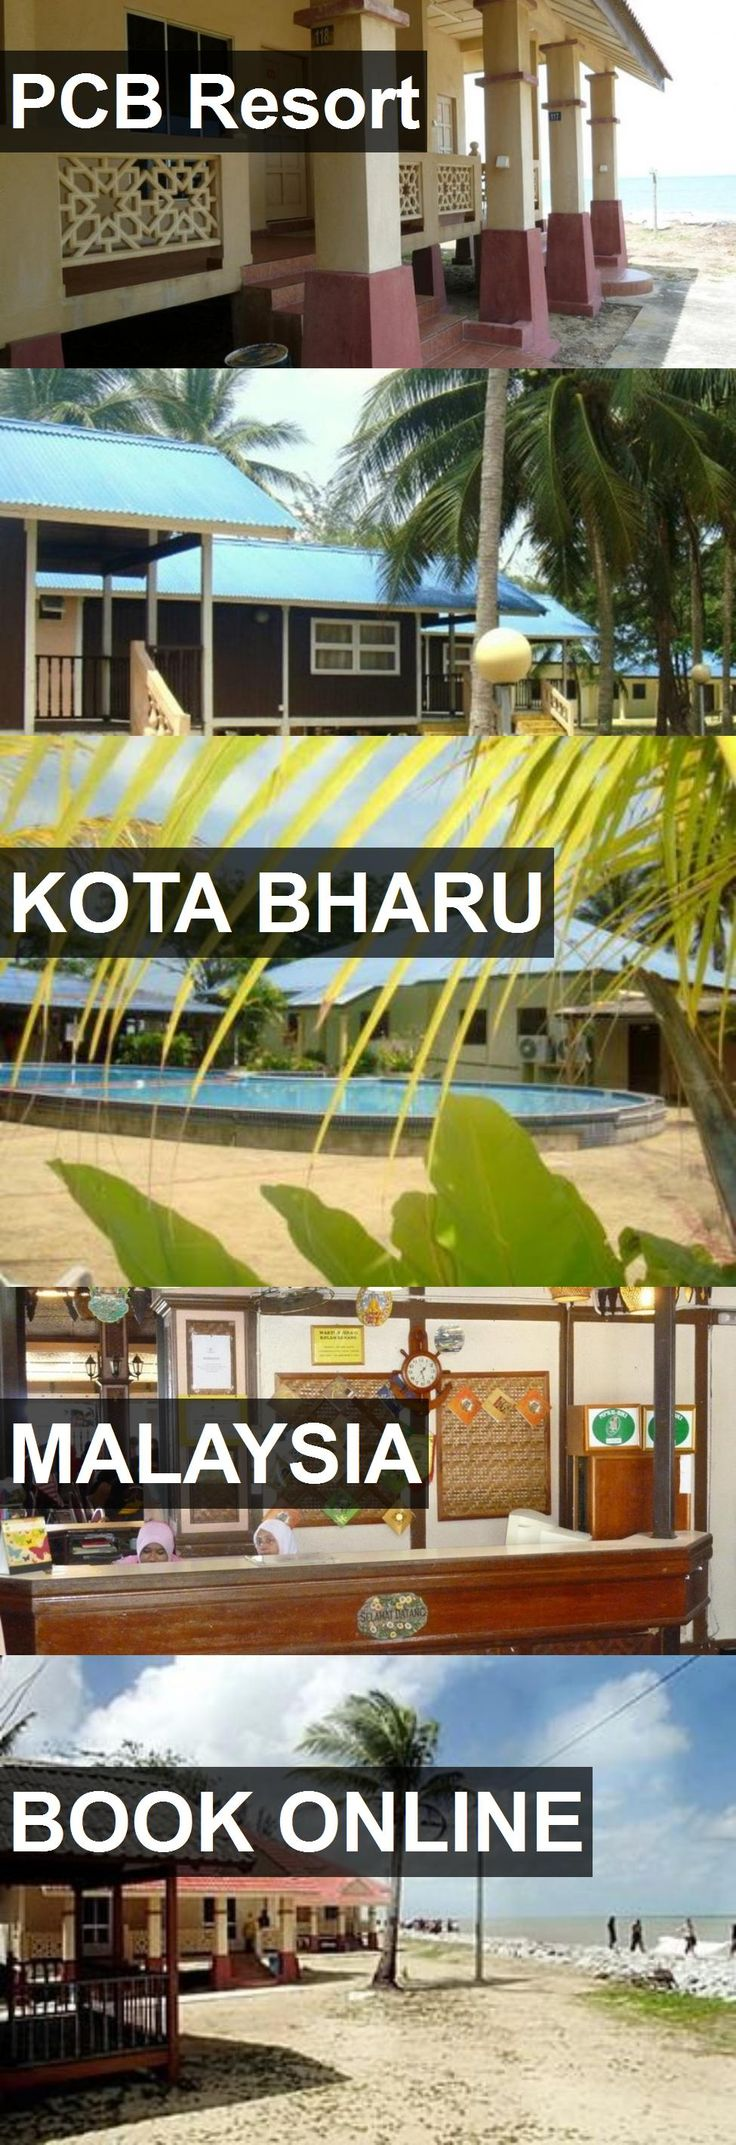 Hotel PCB Resort in Kota Bharu, Malaysia. For more information, photos, reviews and best prices please follow the link. #Malaysia #KotaBharu #travel #vacation #hotel